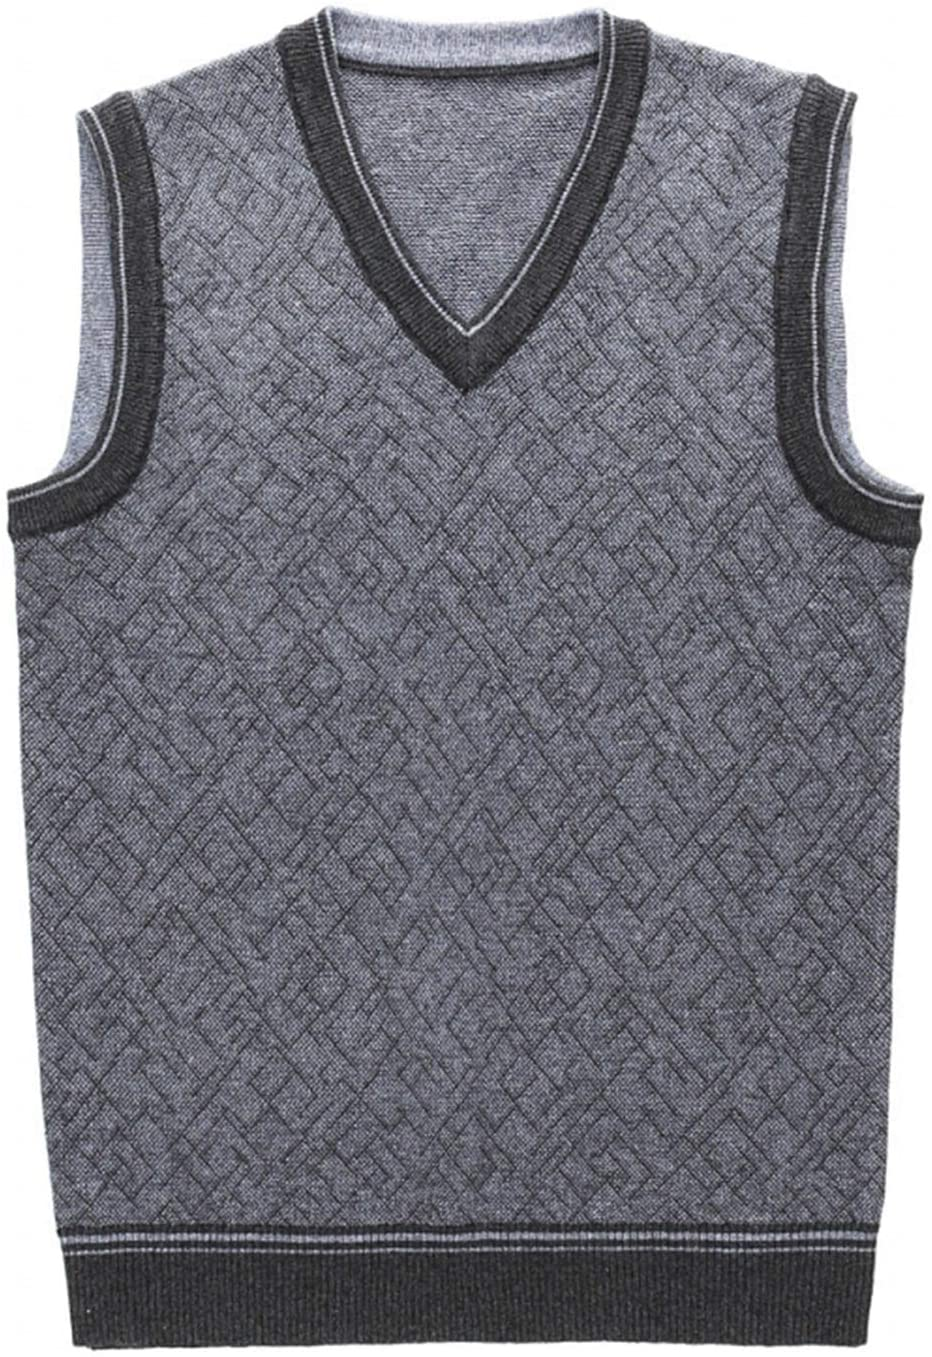 QJBH1 MEN`S SWEATER VEST SLEEVELESS CASUAL KNIT VEST MEN`S V-NECK VEST MEN GENTLY WASH YOUR HANDS TO RELAX AND SMOOTH DO NOT TWIST DO NOT DRY AND BLEACH (COLOR : DARK GRAY SIZE : M)